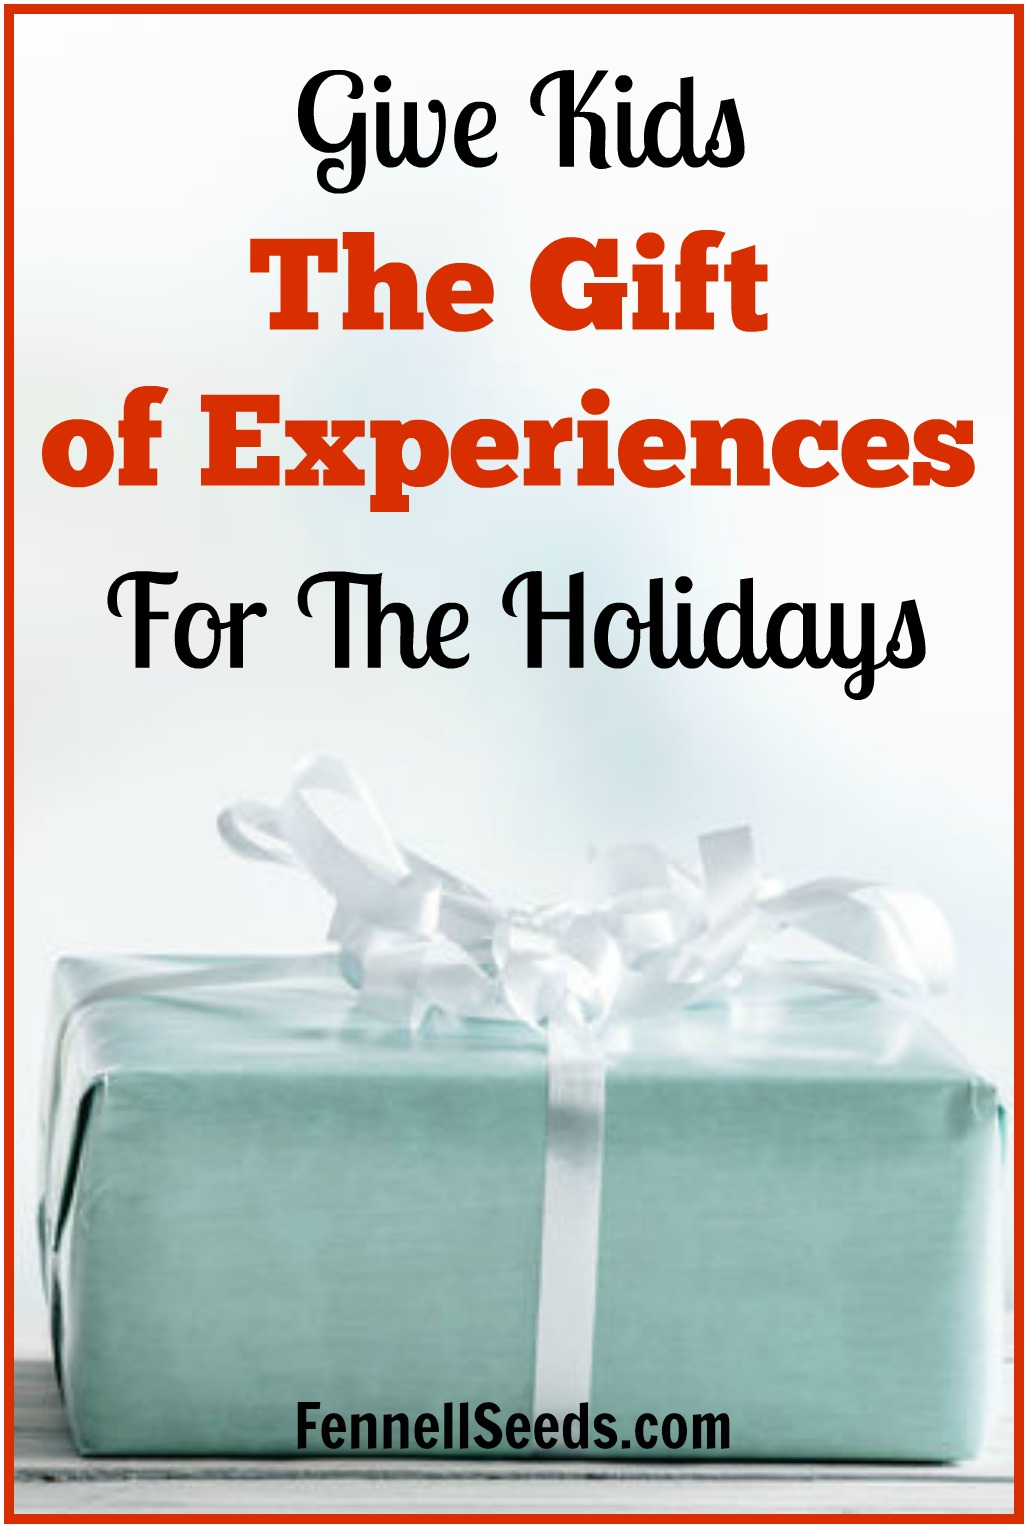 Give Kids The Gift Of Experiences For The Holidays With ...